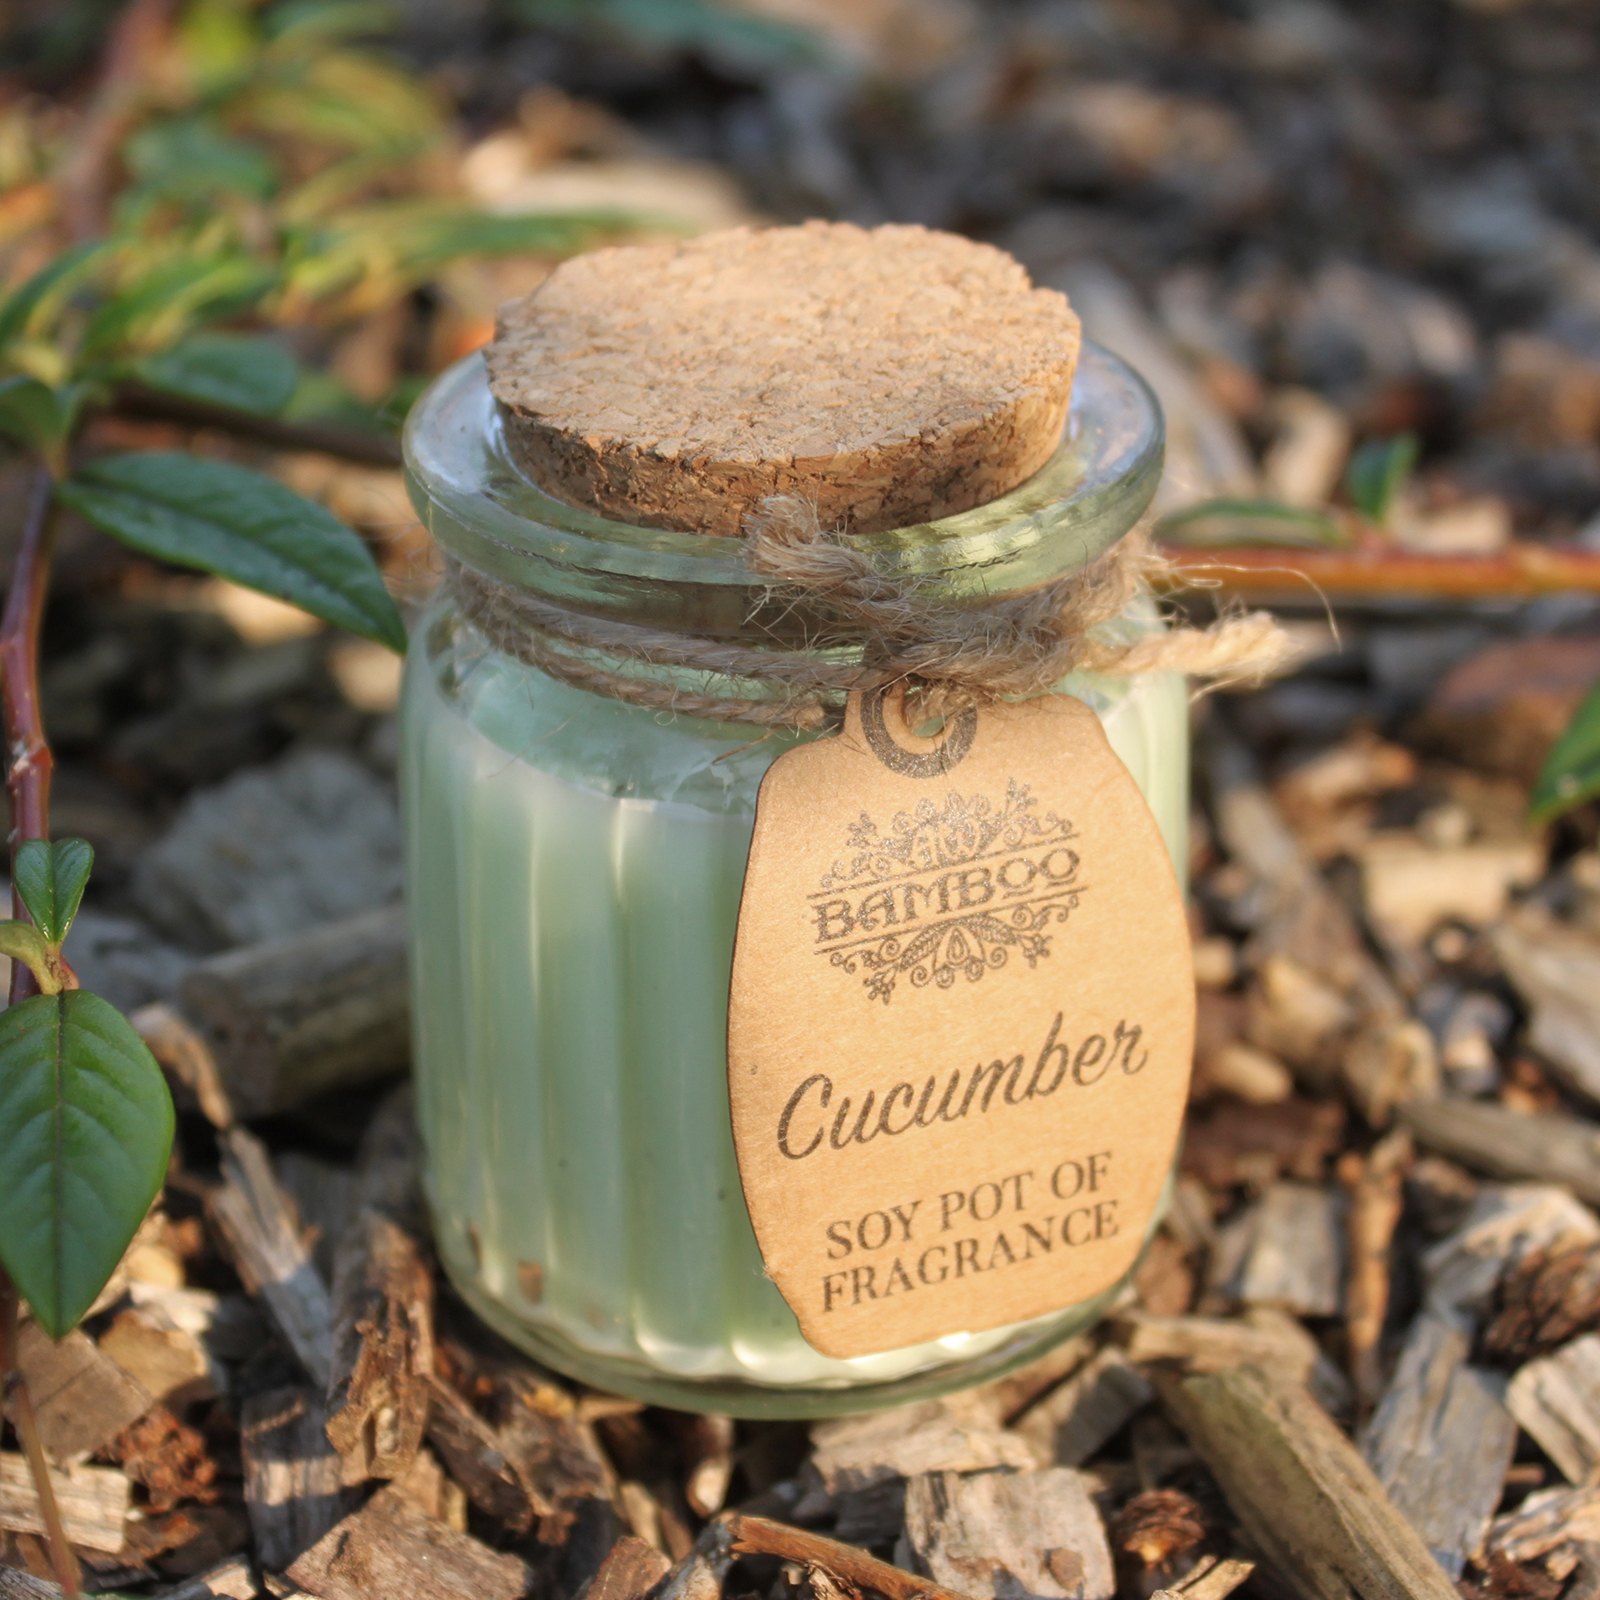 2x Cucumber Soy Pot of Fragrance Candles